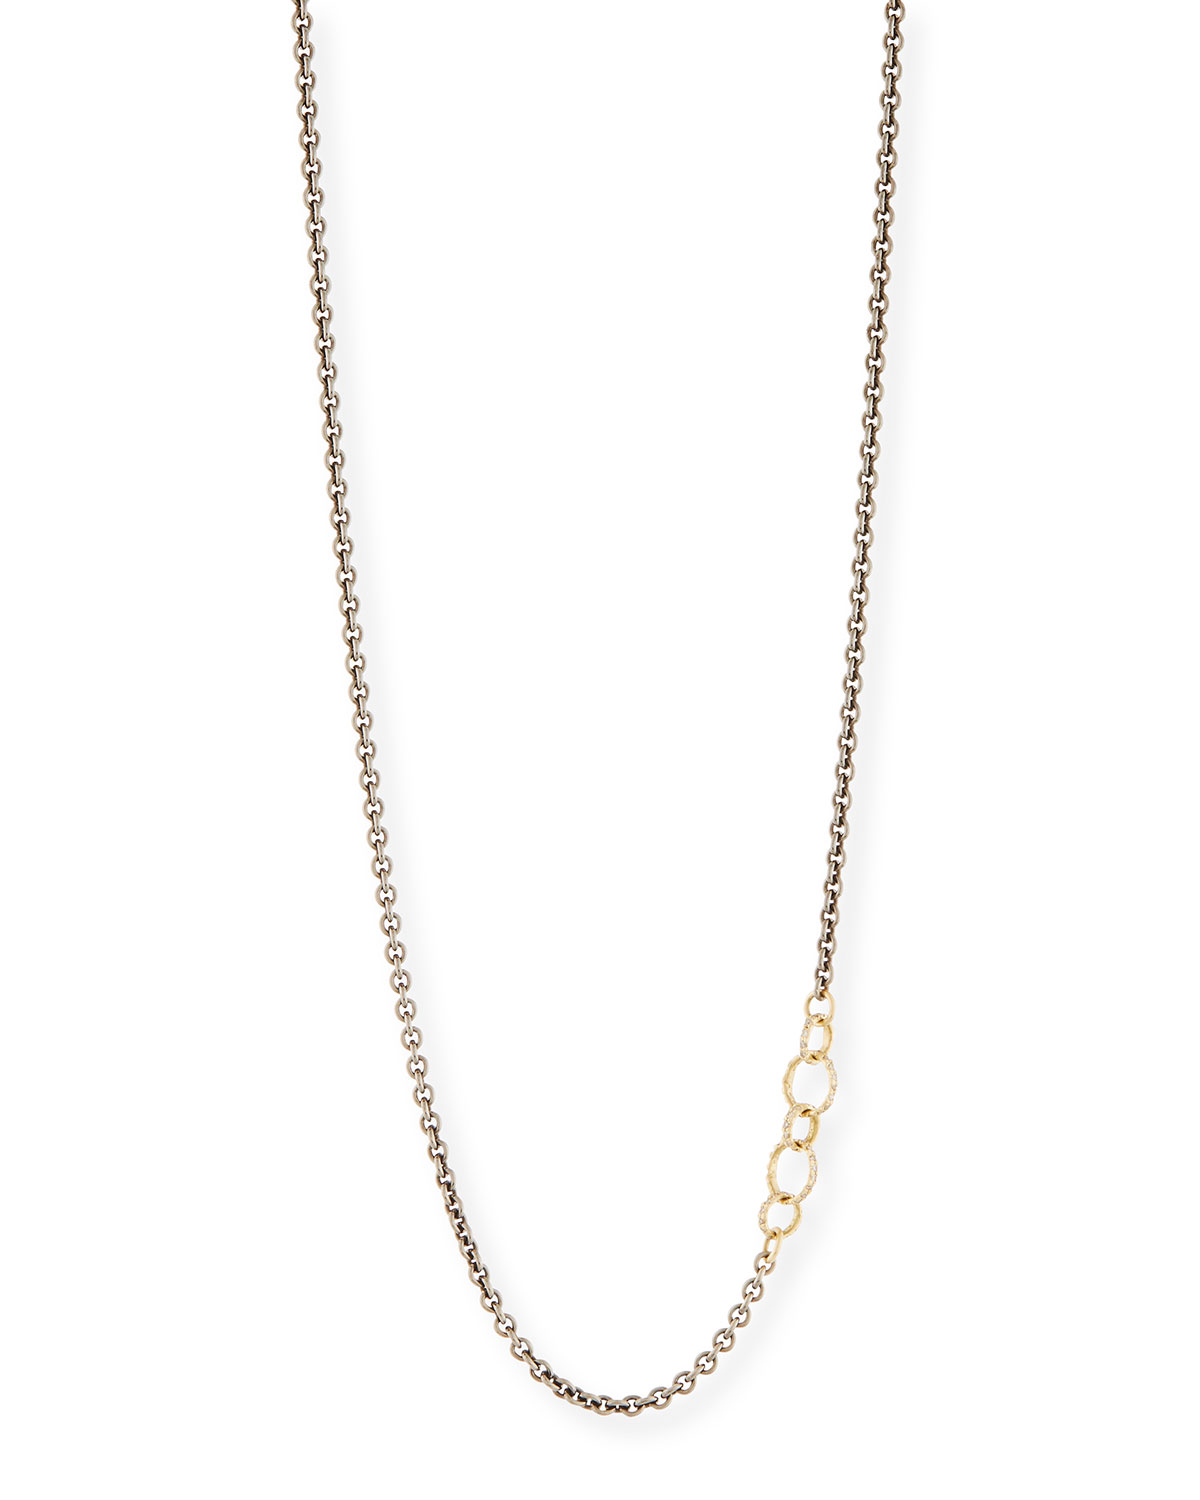 Old World Chain Necklace with Champagne Diamonds